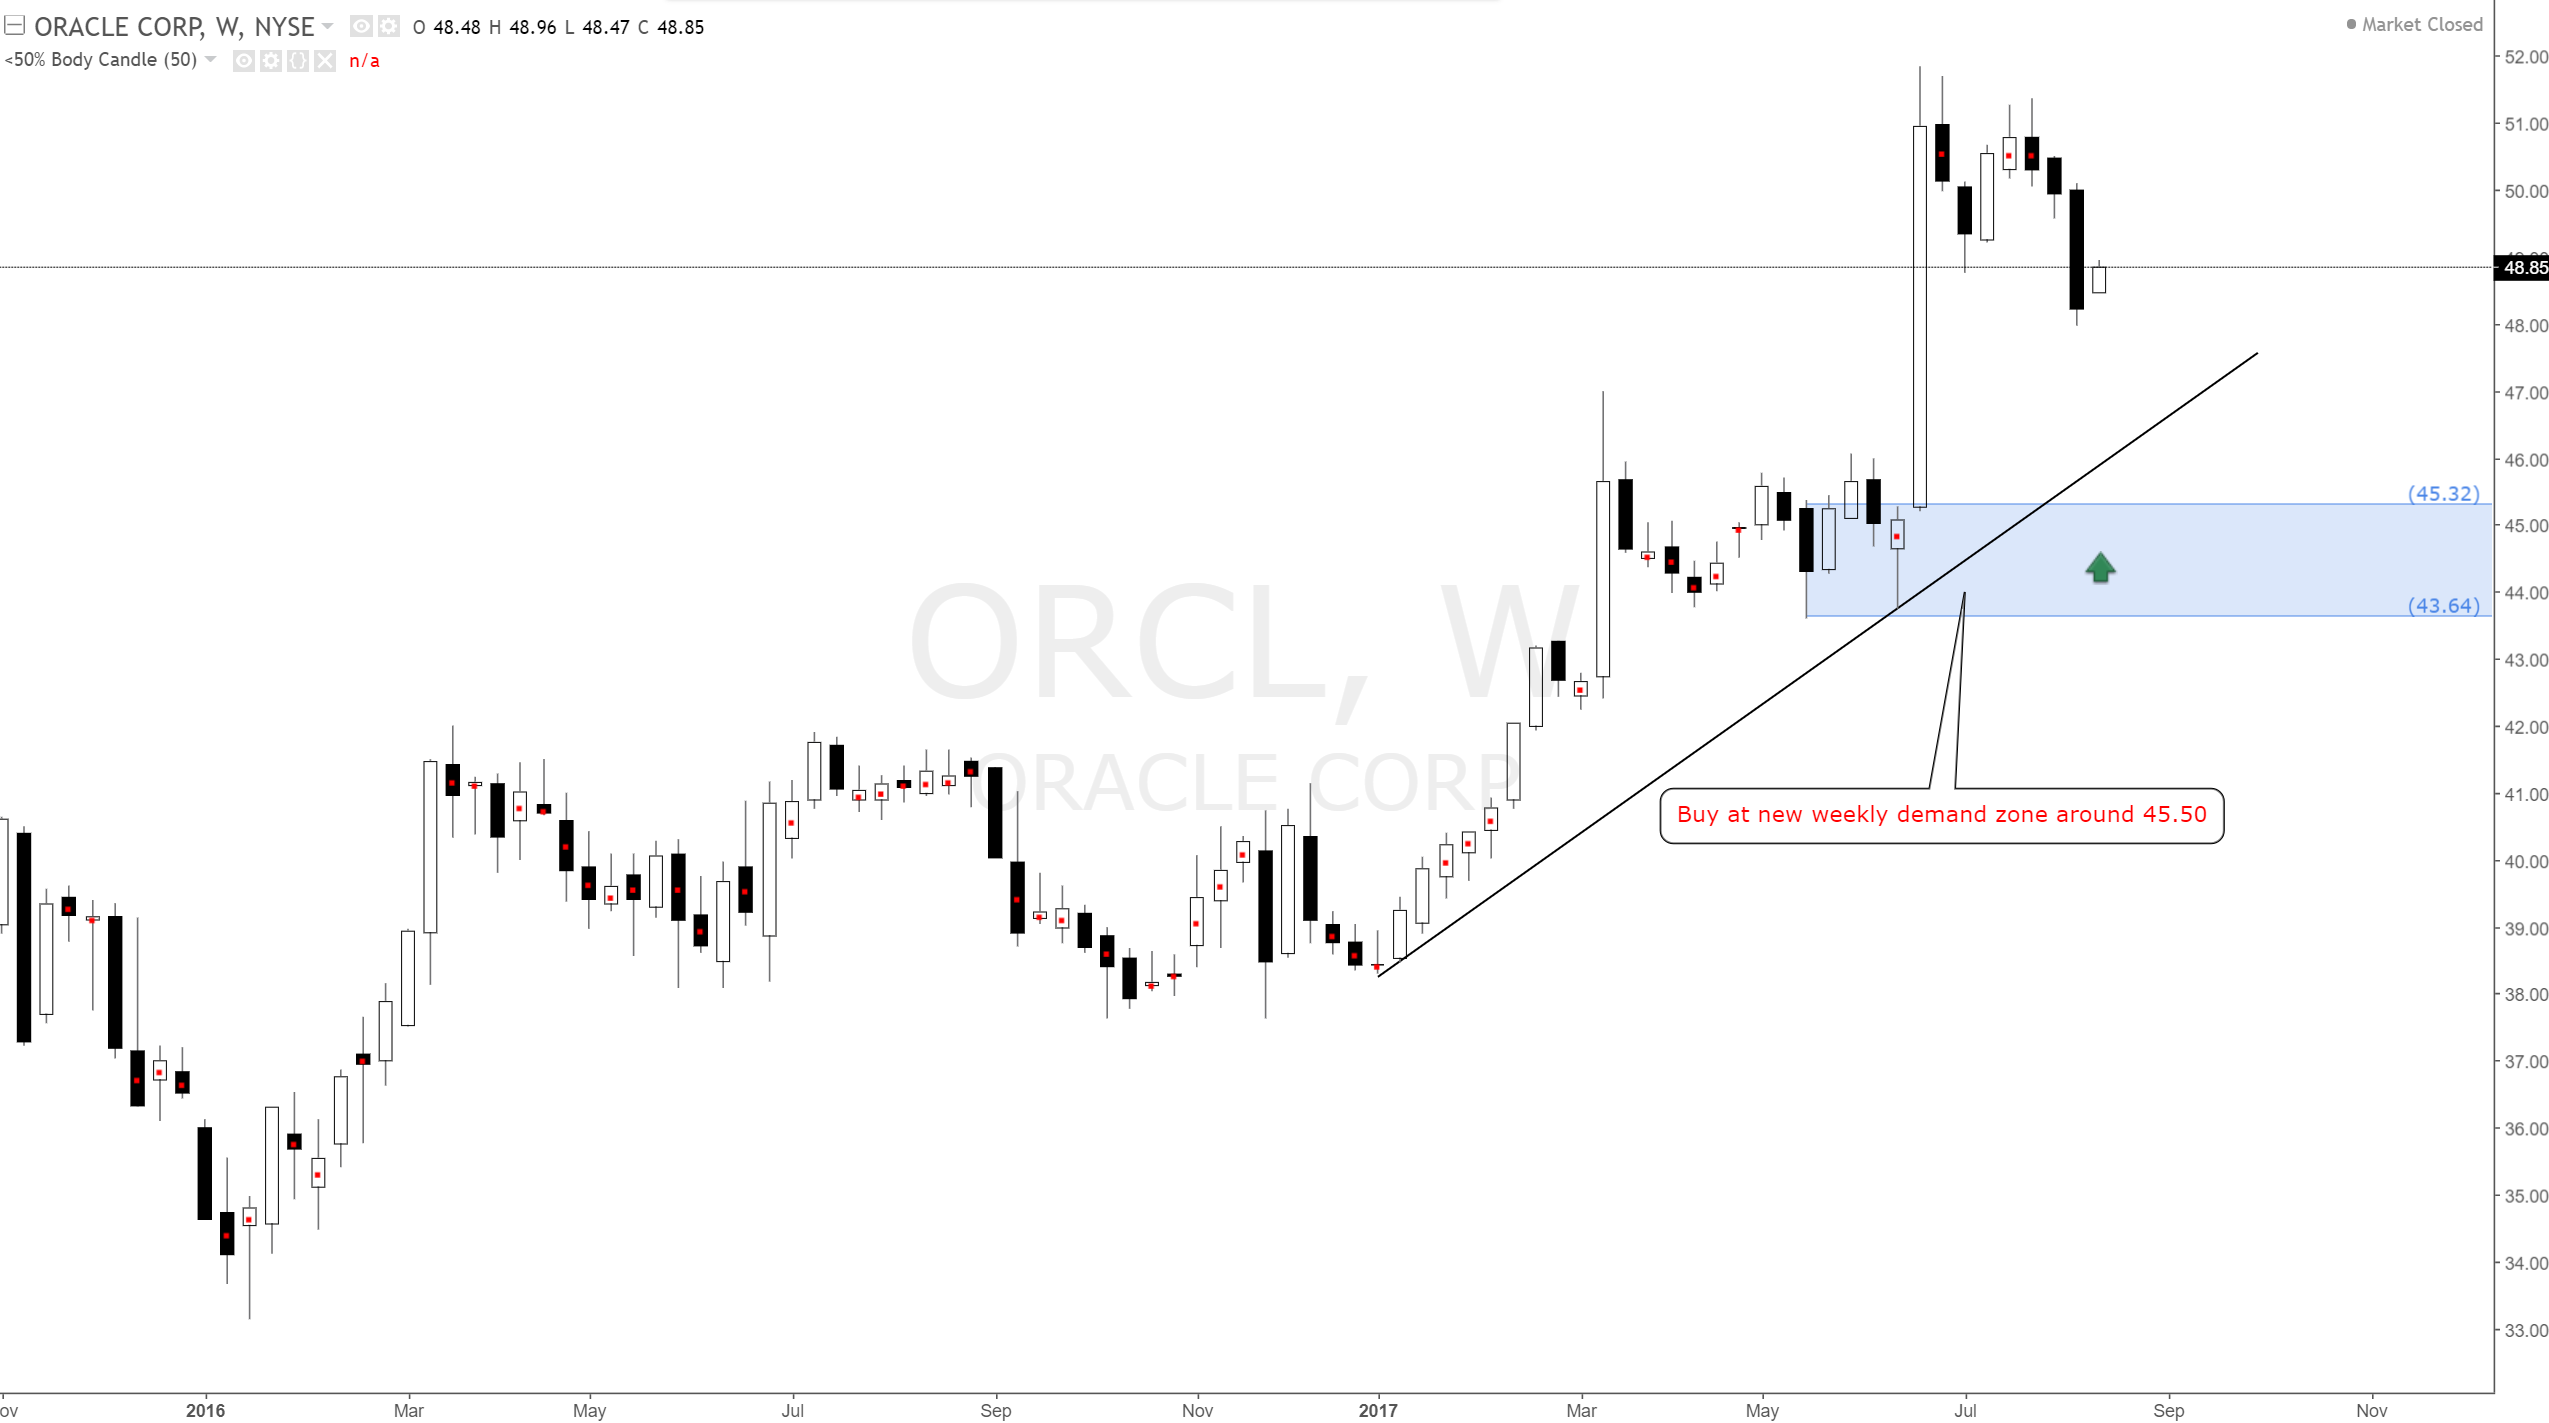 Orcl Stock Quote Oracle Orcl American Stock Long Bias At Weekly Demand Zone 45.50